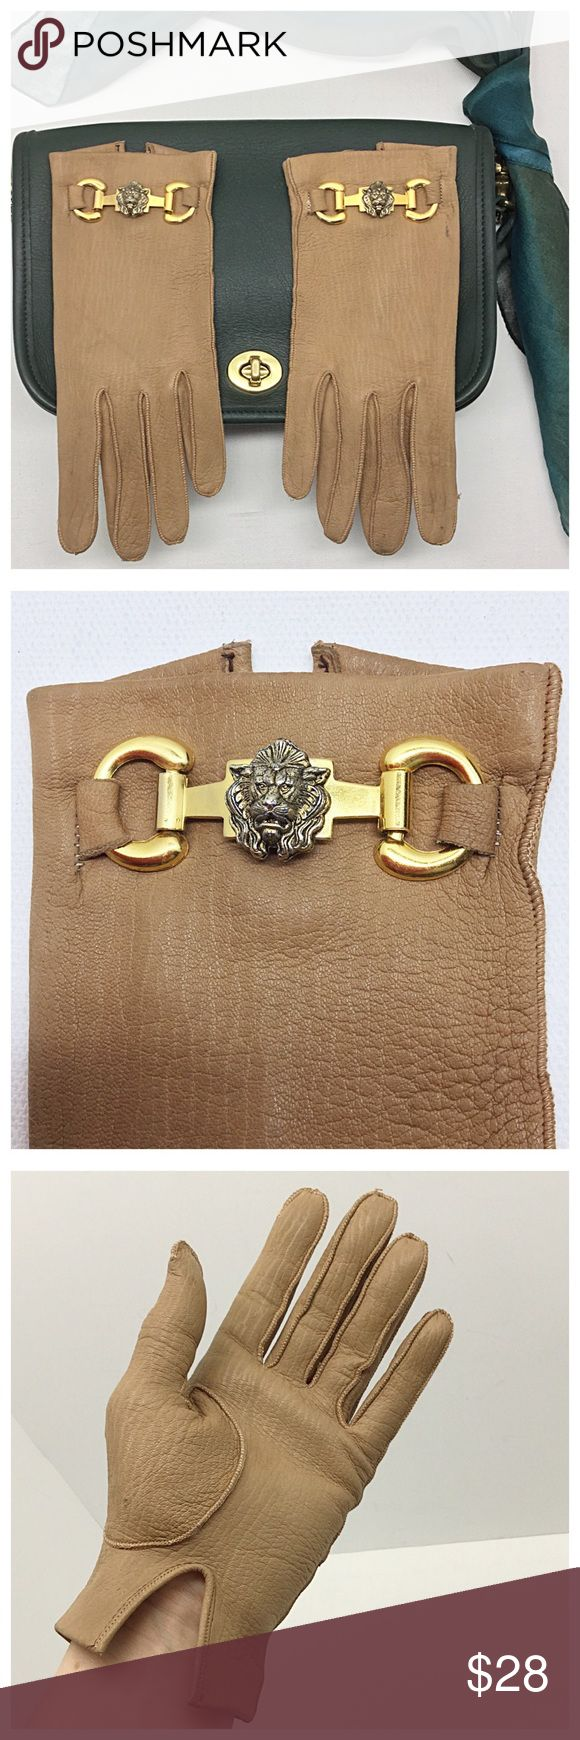 """✨Vintage Lion's Head Gloves✨ 🚫Trades/Holds🚫 *  Soft camel leather, brass-plated lion ornaments *  Bracelet length: about 8"""" middle fingertip to end *  Soft suede interior *  Size 7, about 6 3/4"""" around knuckles, middle finger length=3 1/4"""" *  Stretchy leather: my hand is 7 1/8 and these stretch to fit easily *  Pre-loved, tiny holes from price tag, marks near lion on 1 glove, some smudges on fingertips, not like-new but unique *  Covershot bag/scarf not included 🙂 Plz ask ?s if unsure of…"""